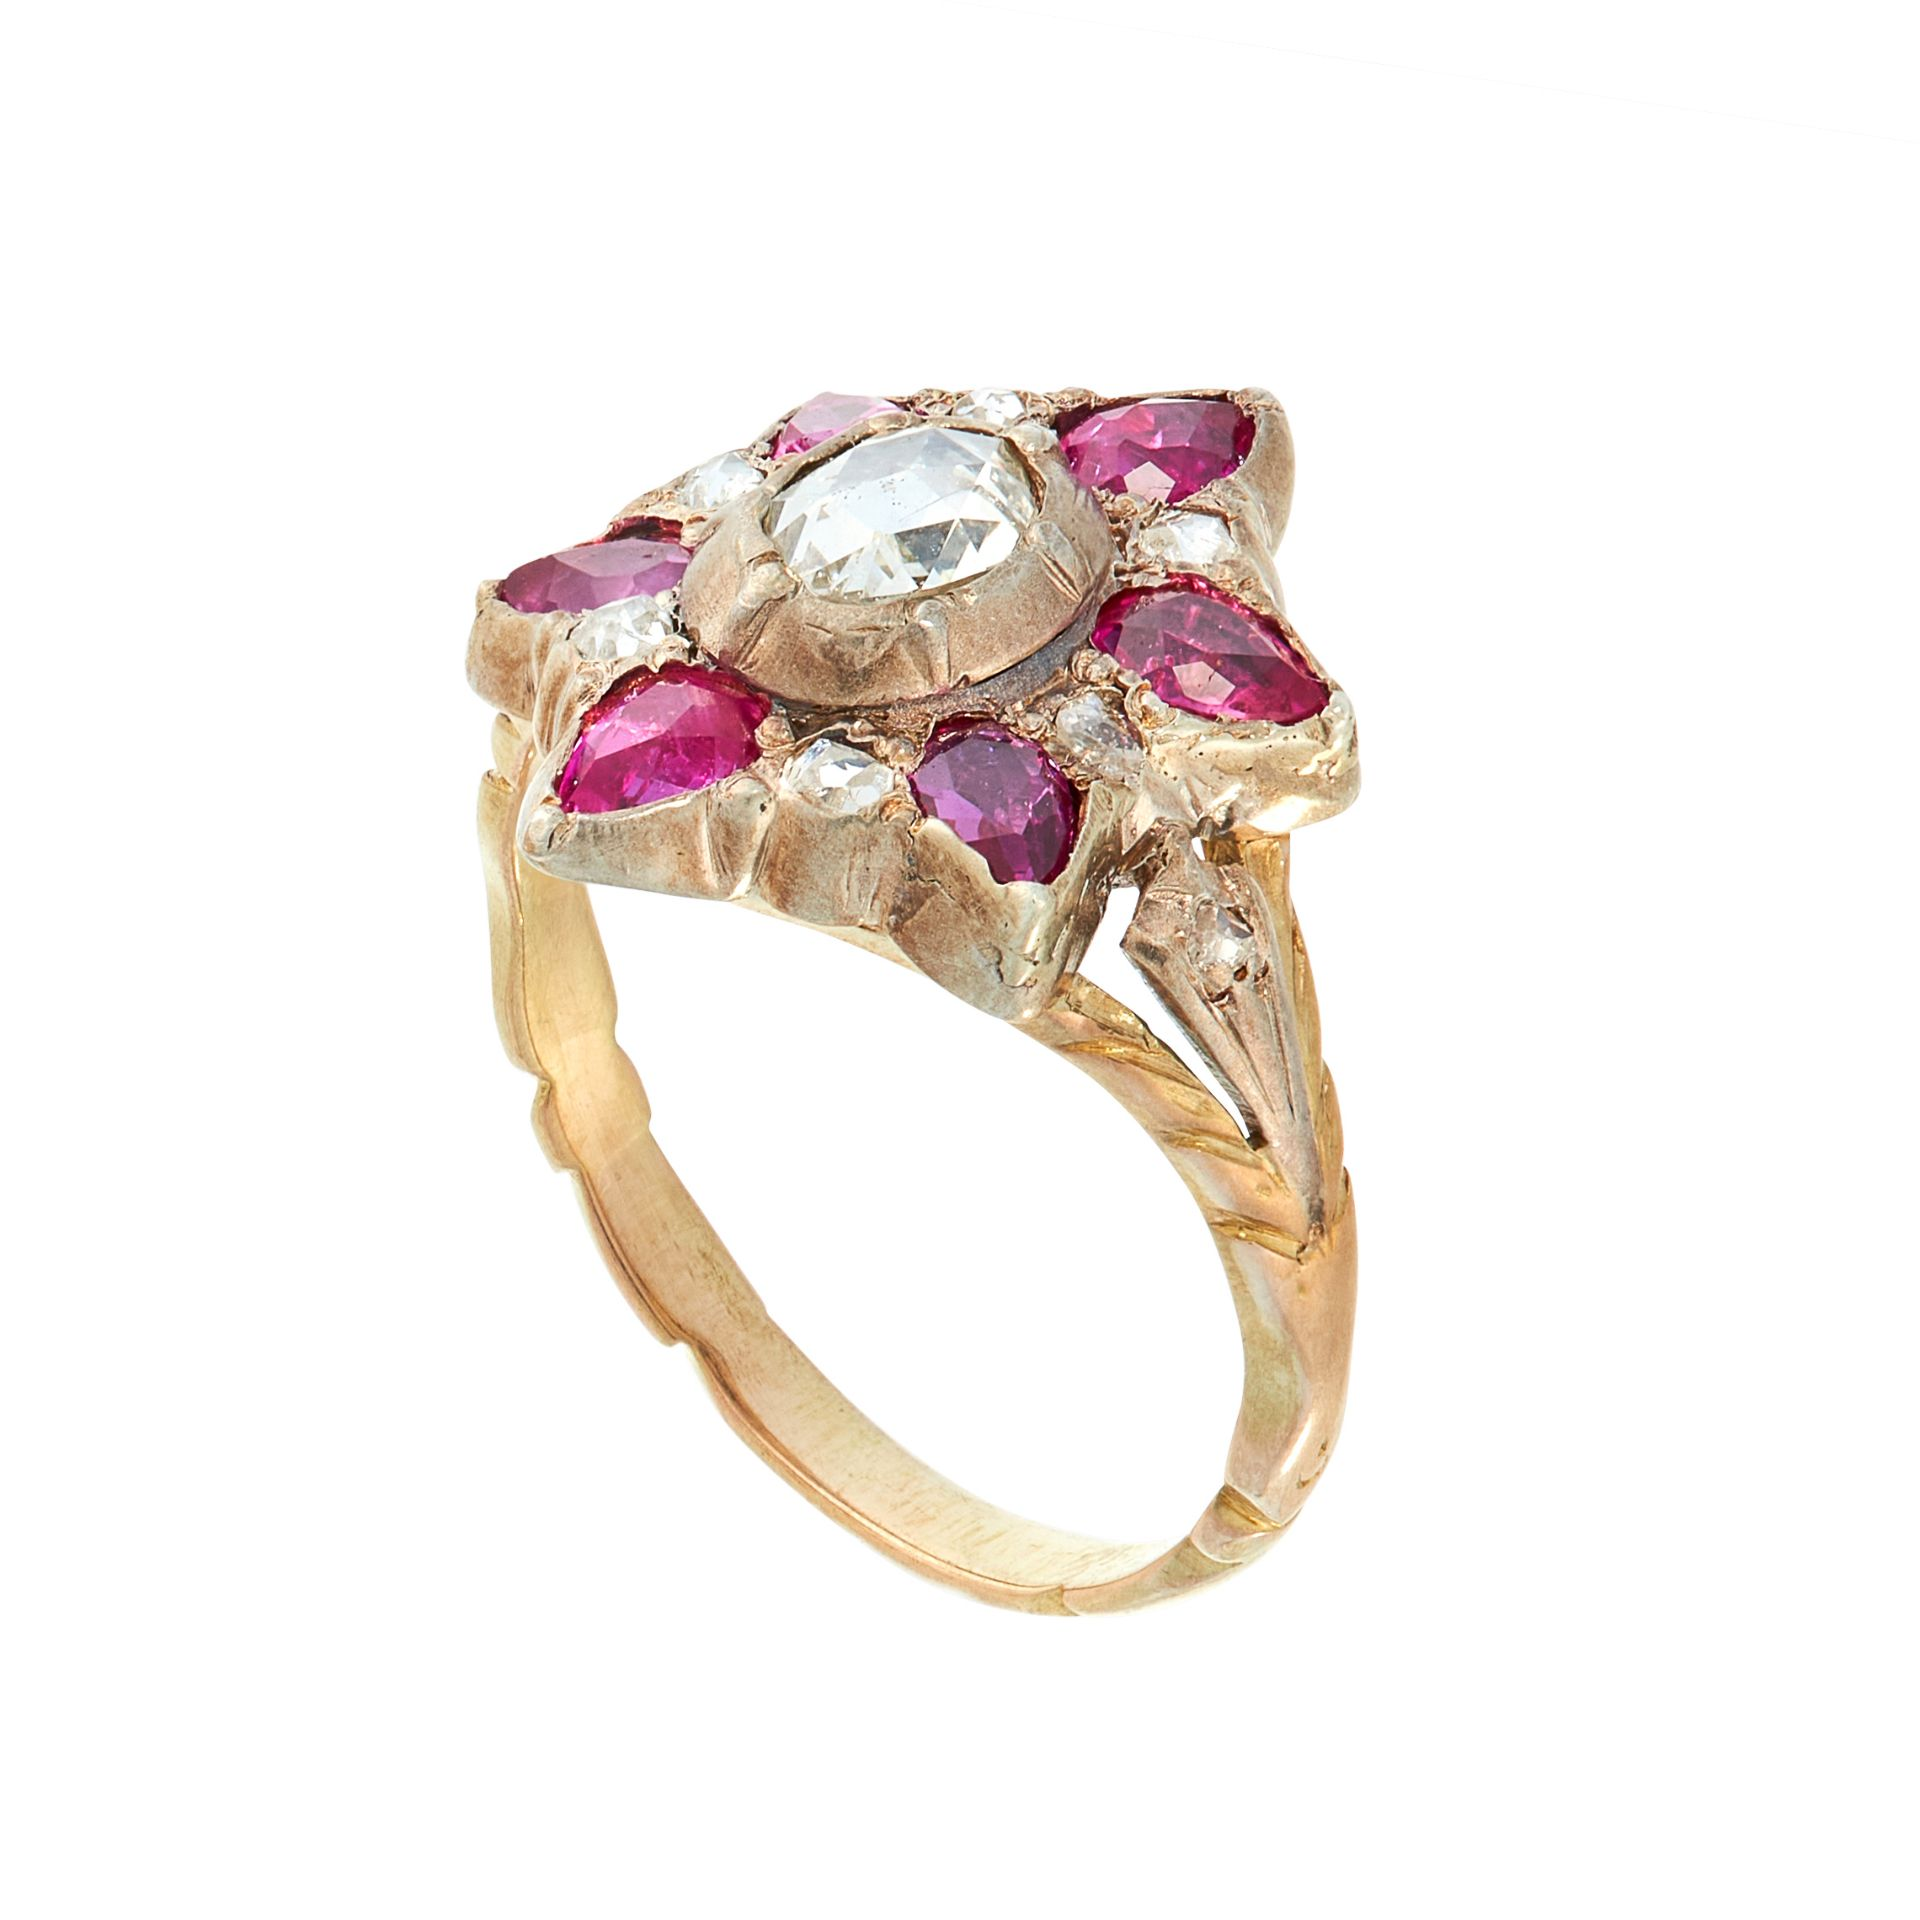 AN ANTIQUE DIAMOND AND RUBY DRESS RING, 19TH CENTURY in yellow gold and silver, set with a central - Image 2 of 2